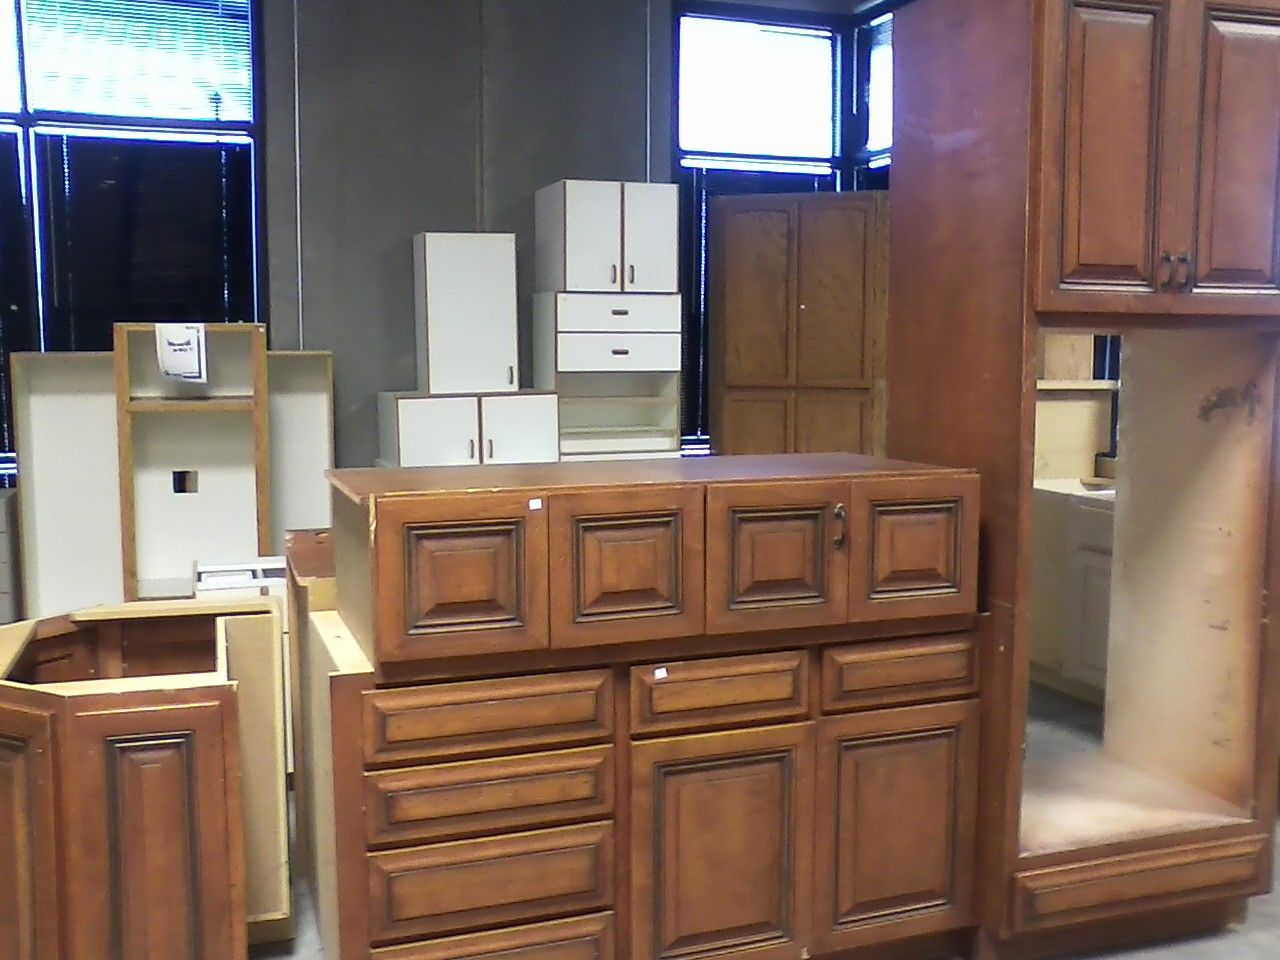 Cabinets - Sometimes we will receive donations of full ...